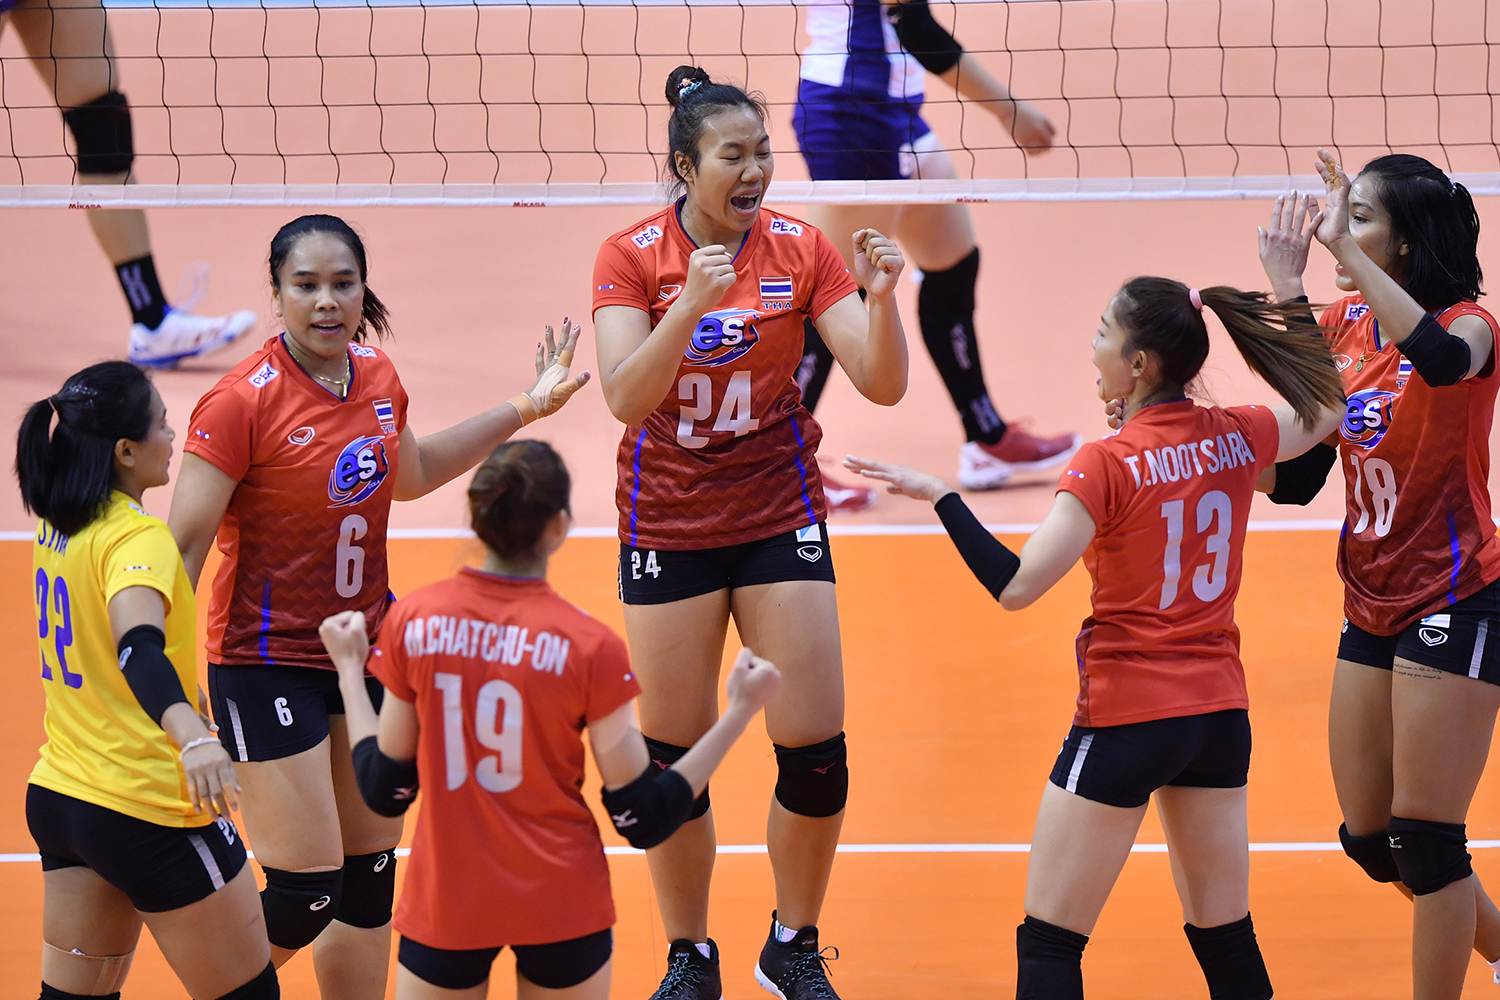 Thai players celebrate after a win over Taiwan.